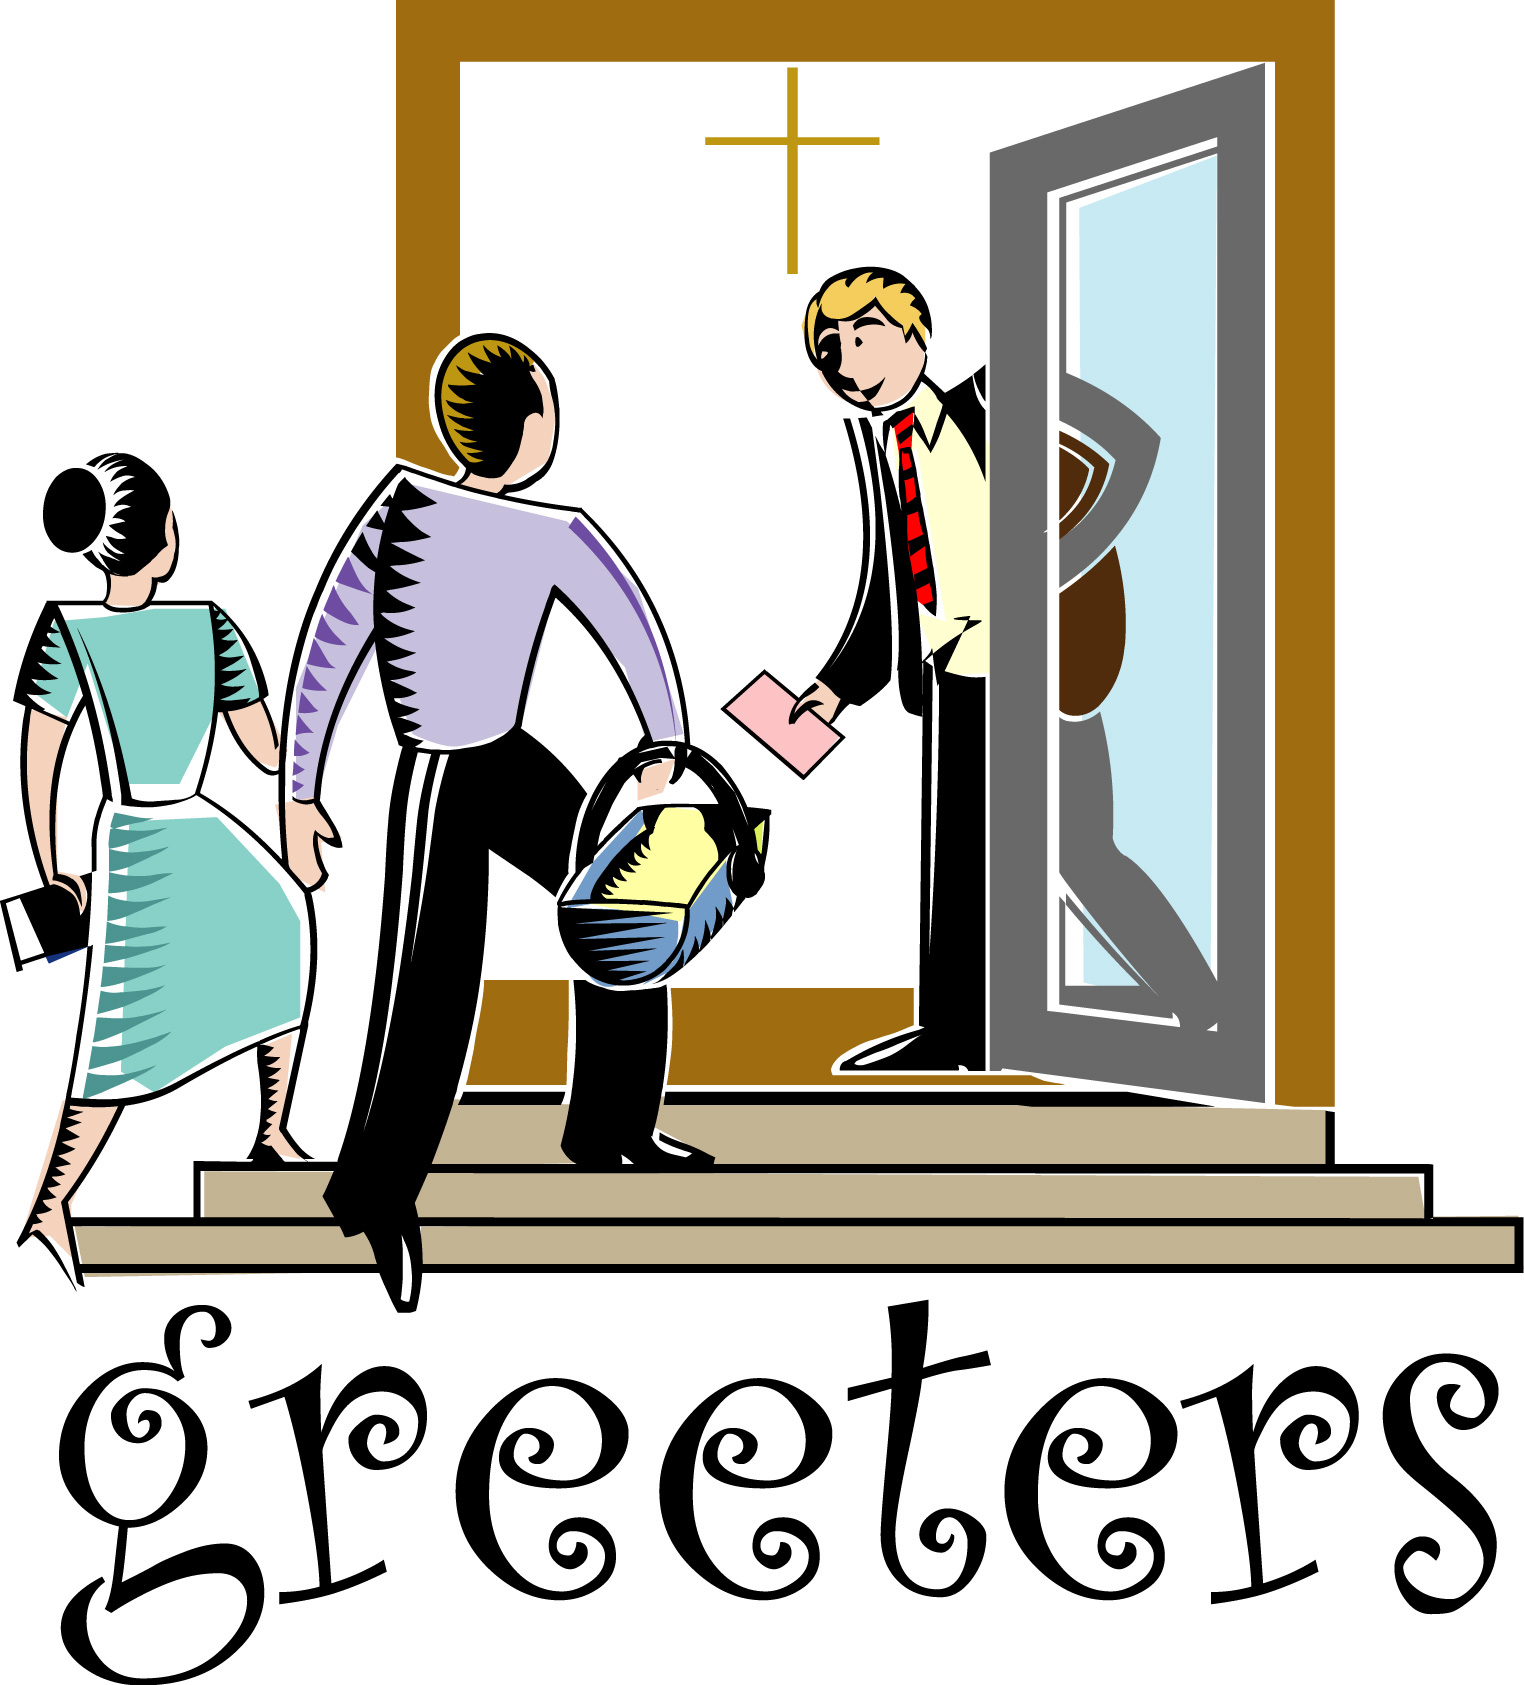 Greeter clip art.